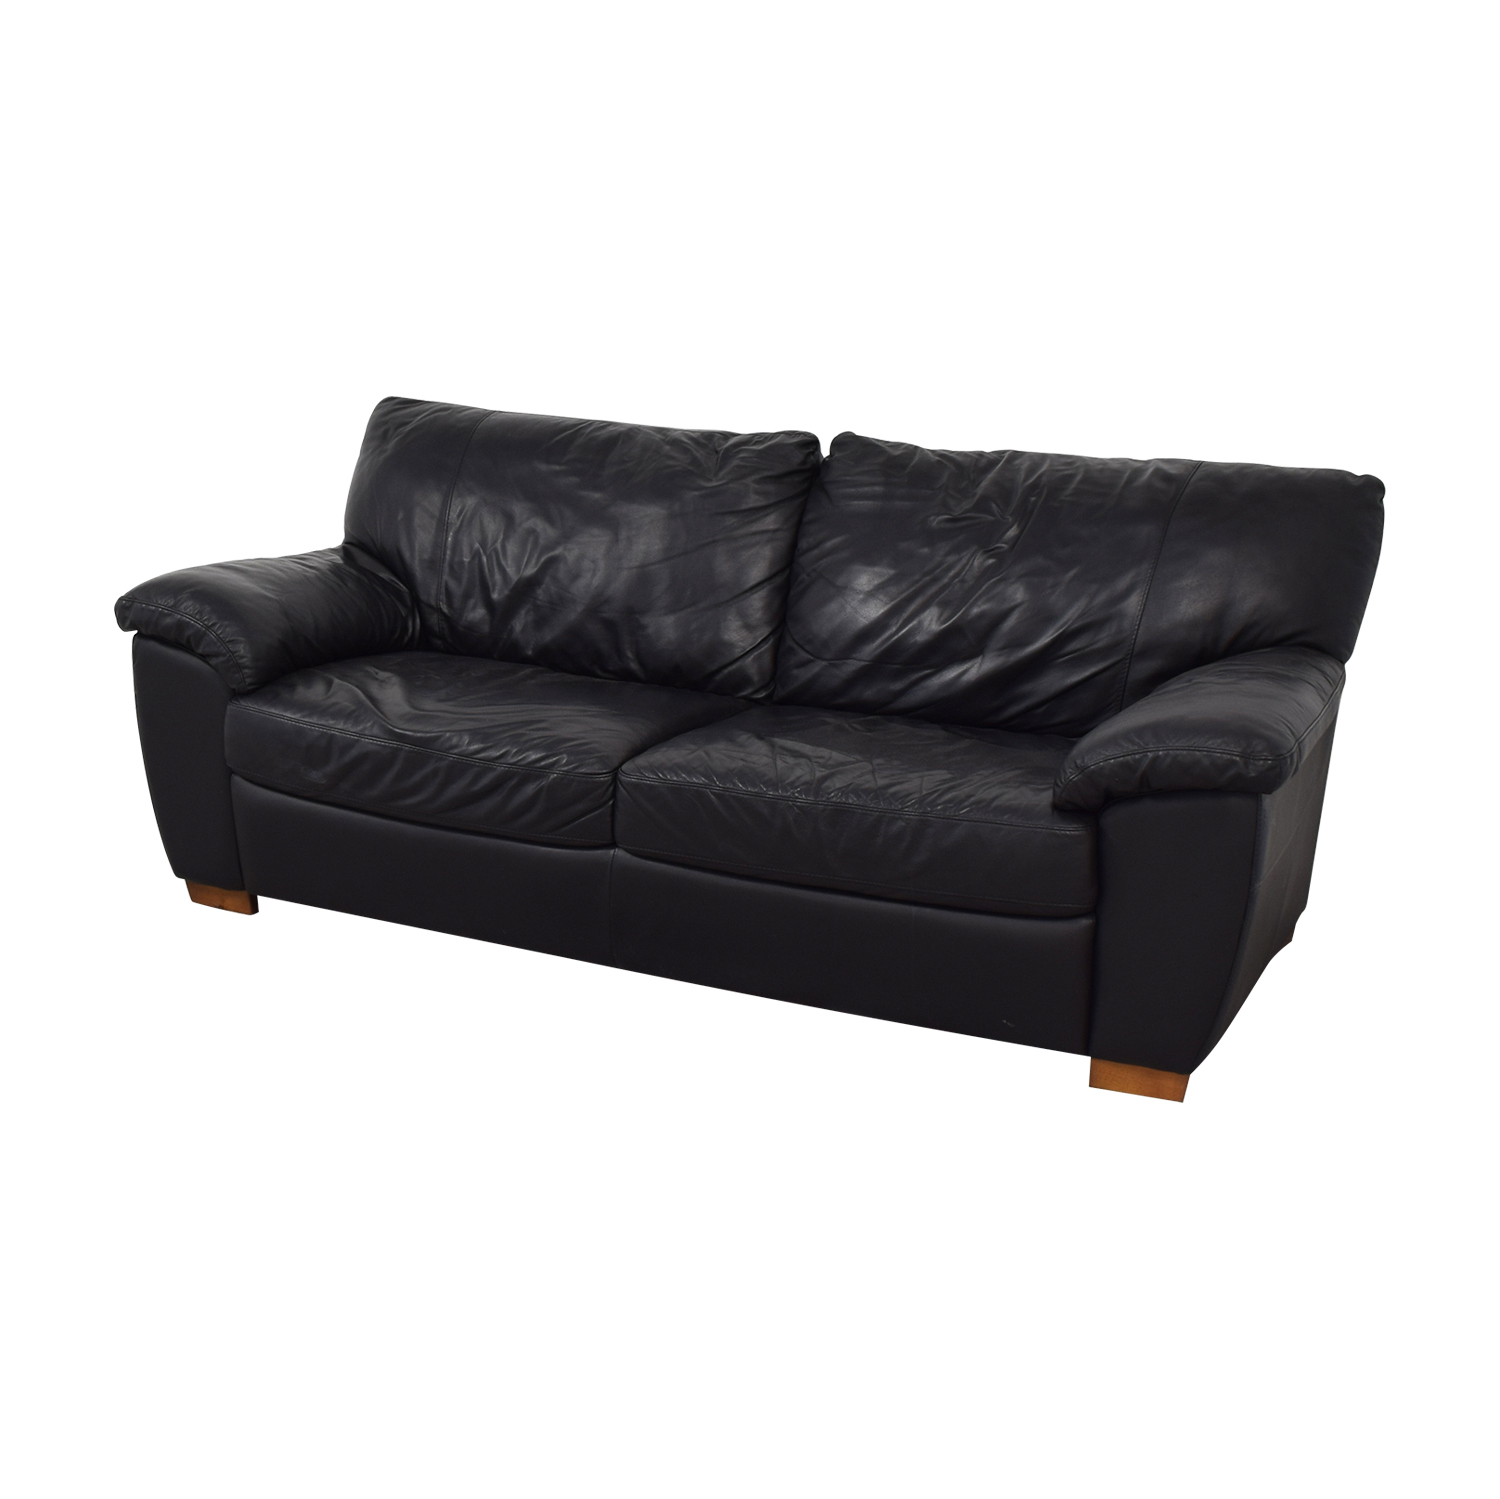 Ikea White Leather Couch Sofas: IKEA IKEA Vreta Black Leather Two-Cushion Sofa